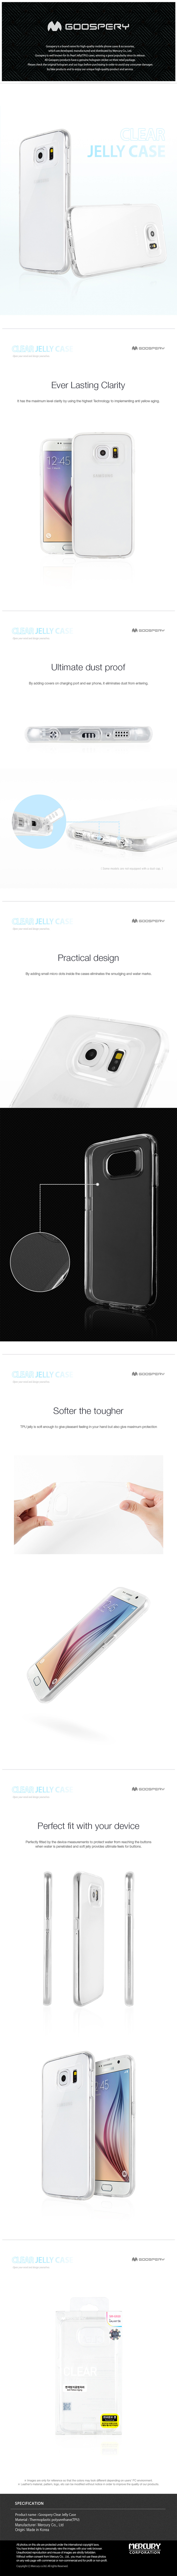 Every Need Want Day Mercury Jelly Case Samsung Galaxy J5 Prime Clear Caselg Q7 Q6 G7 G6 V30 V20 Iphone X 8 7 6 S Plus J7 Pro J3